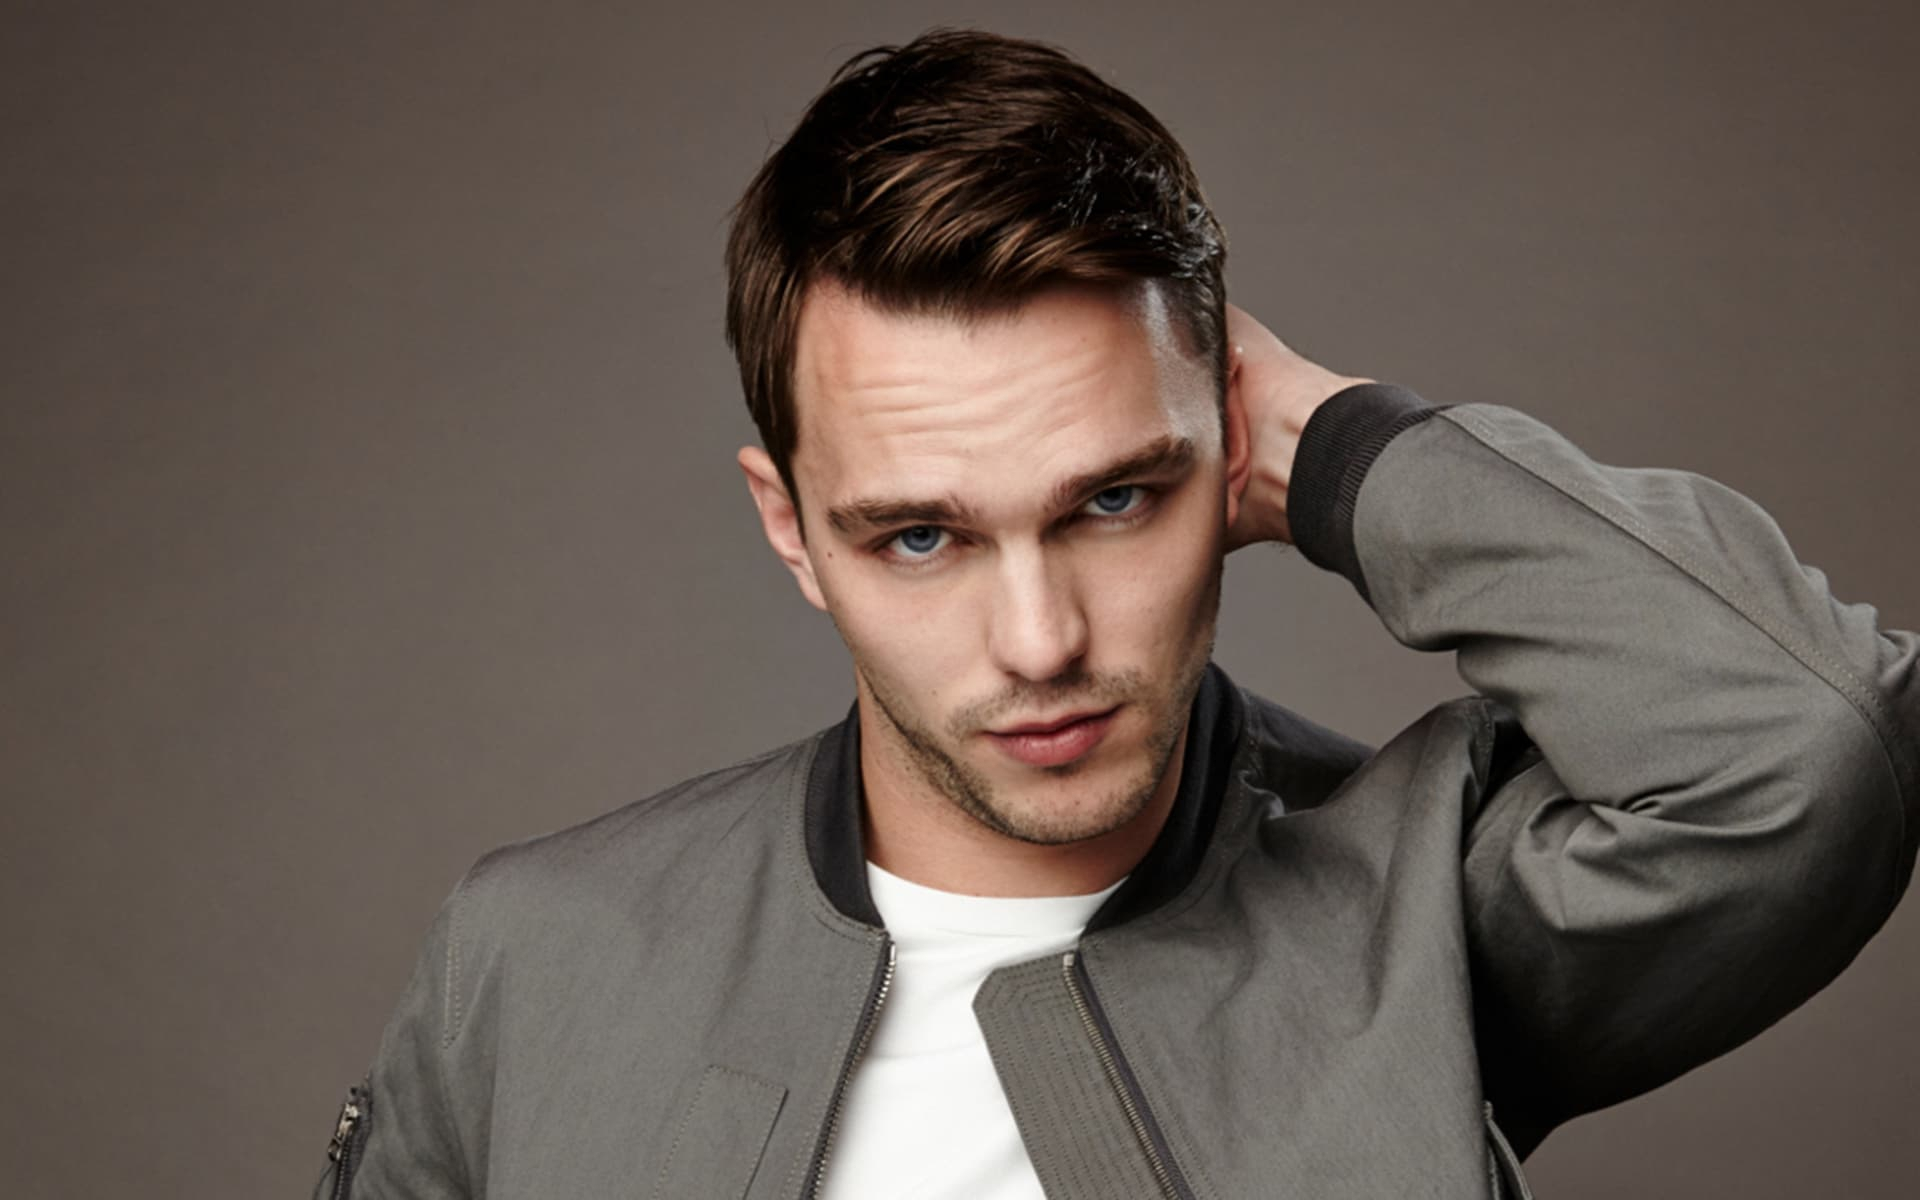 Nicholas Hoult Wallpapers Images Photos Pictures Backgrounds 1920x1200